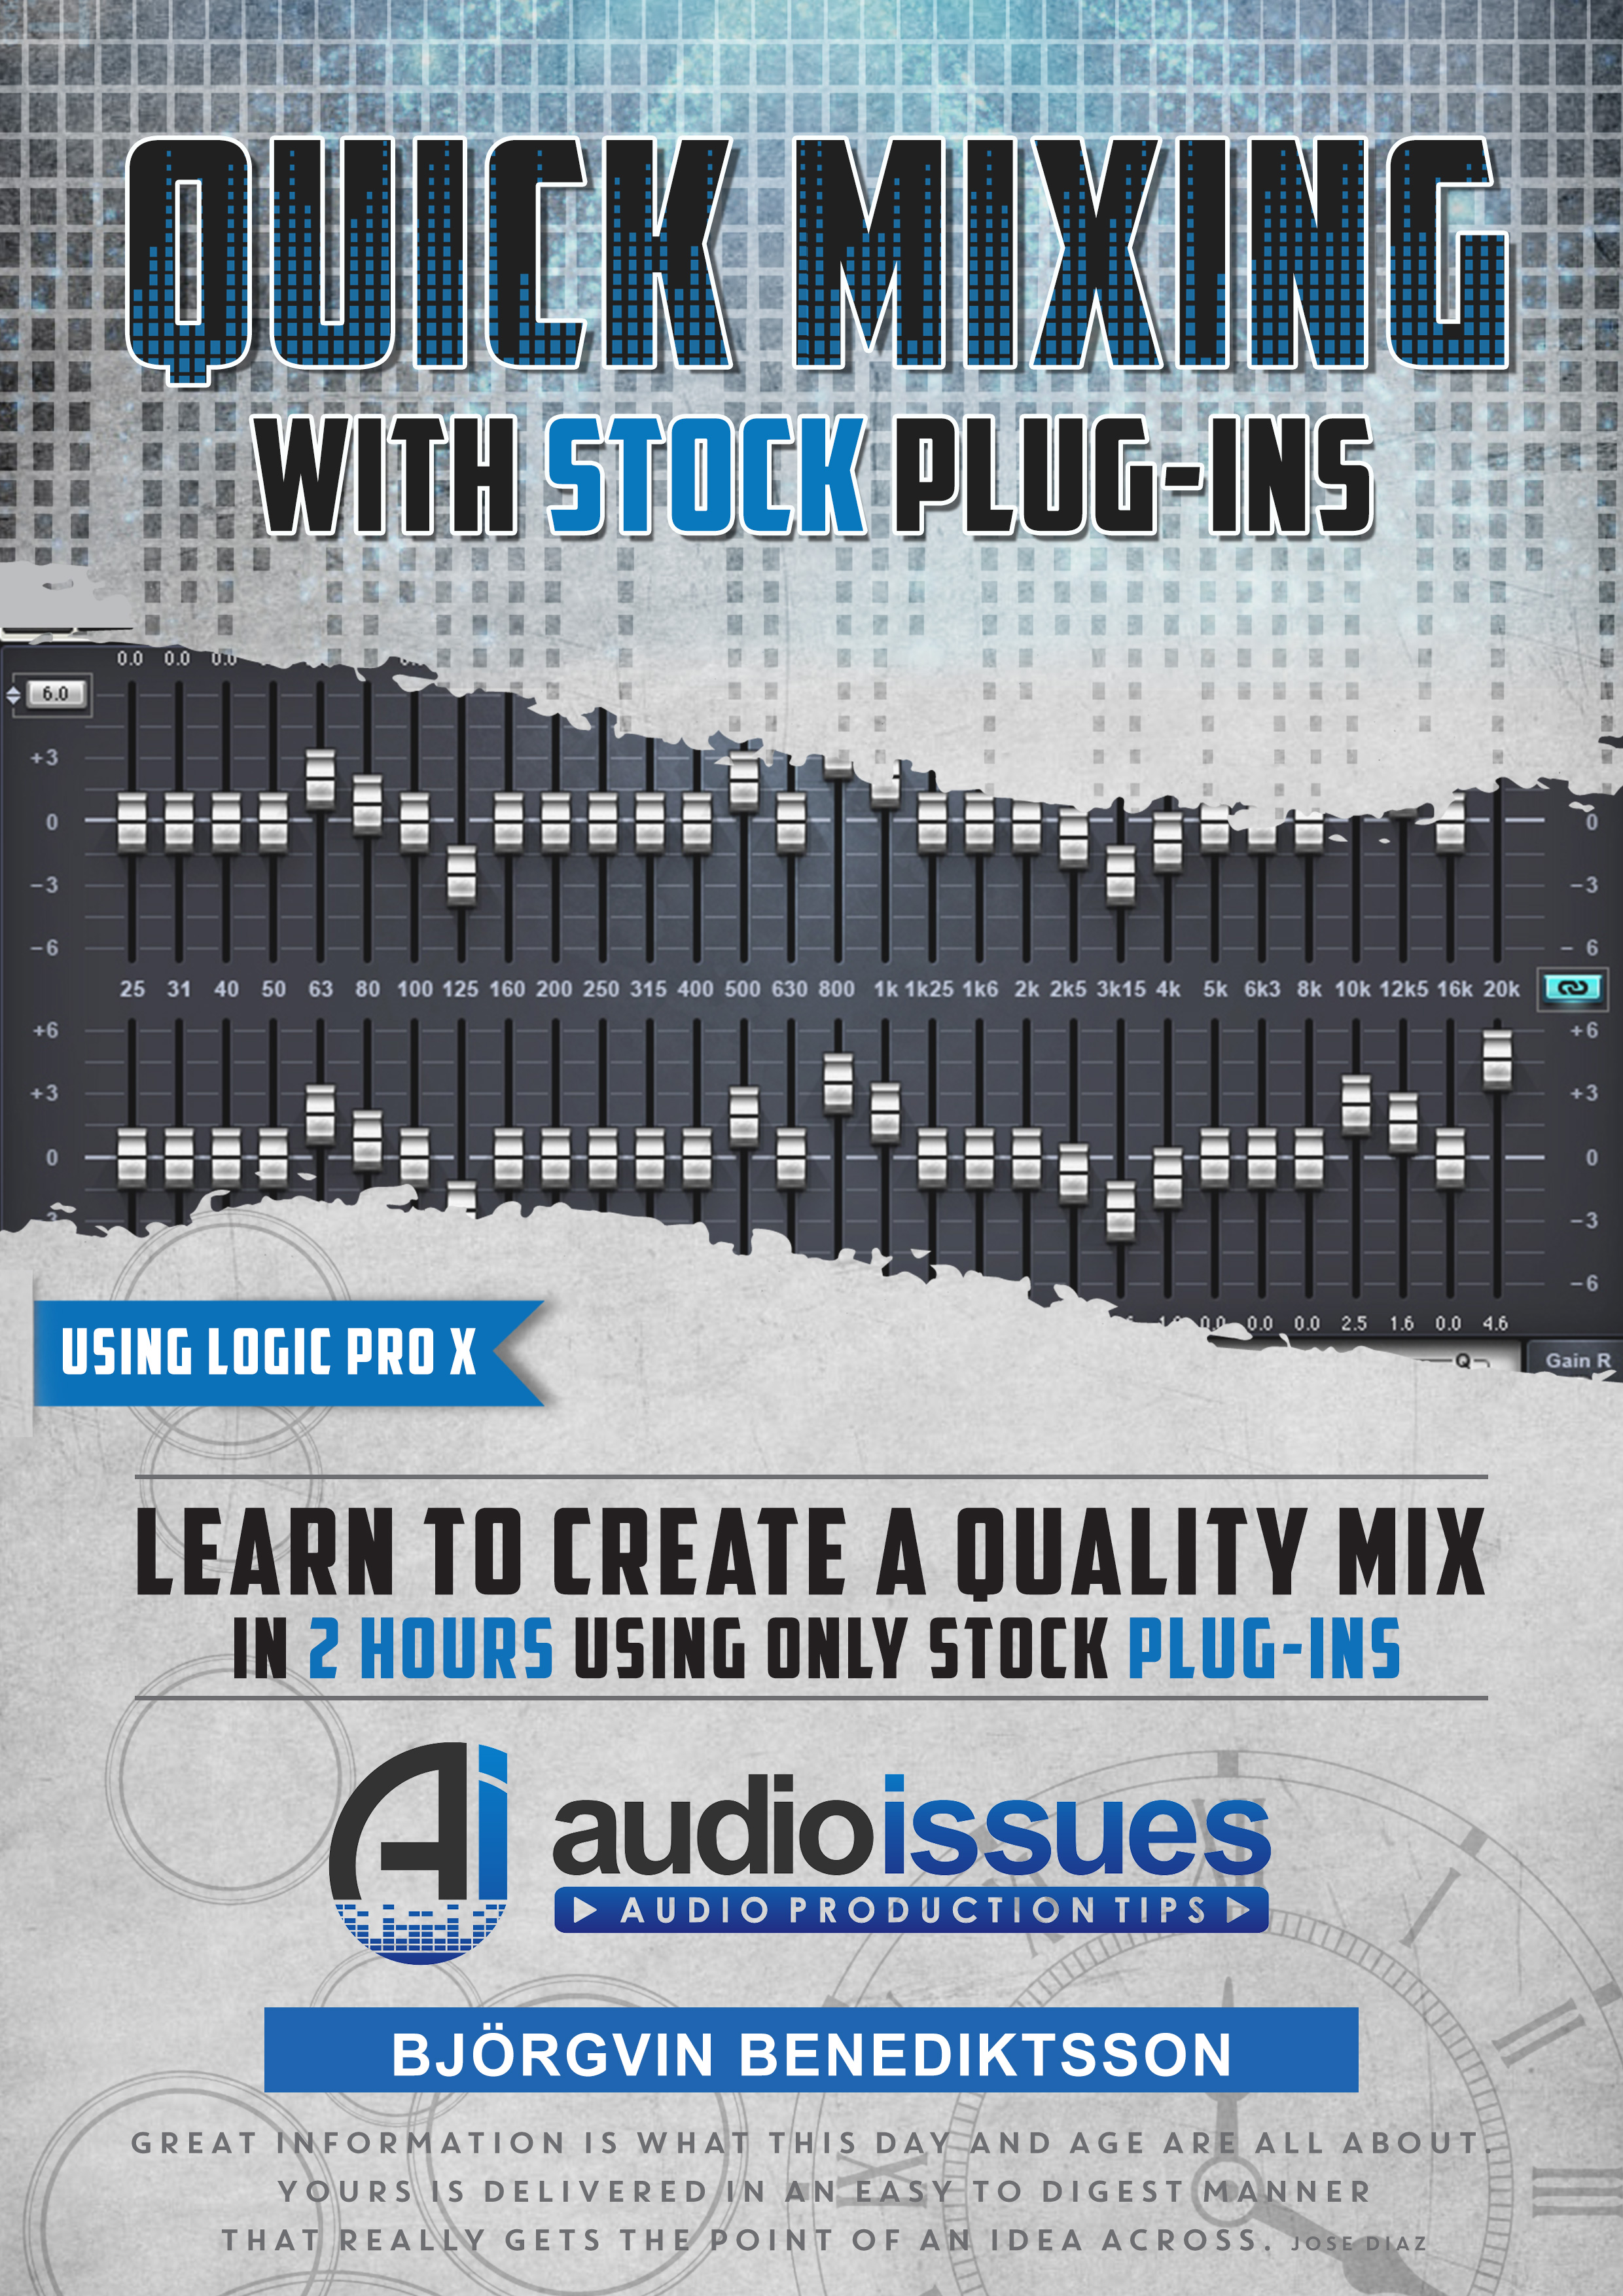 If you've EVER used pirated plug-in, you need to read this - Audio